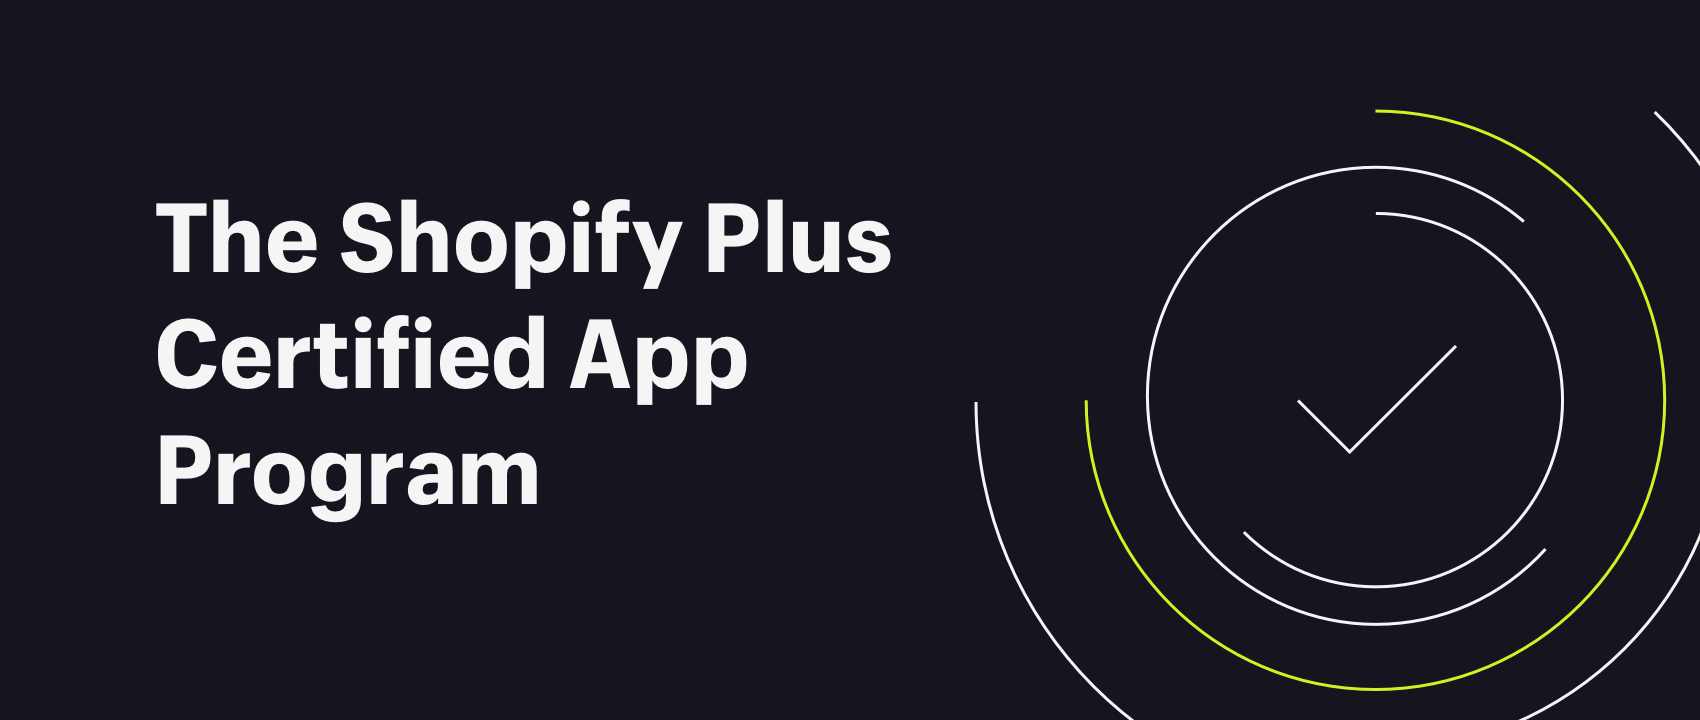 Grow is Shopify Plus Certified—Now Go Build an eCommerce Dashboard